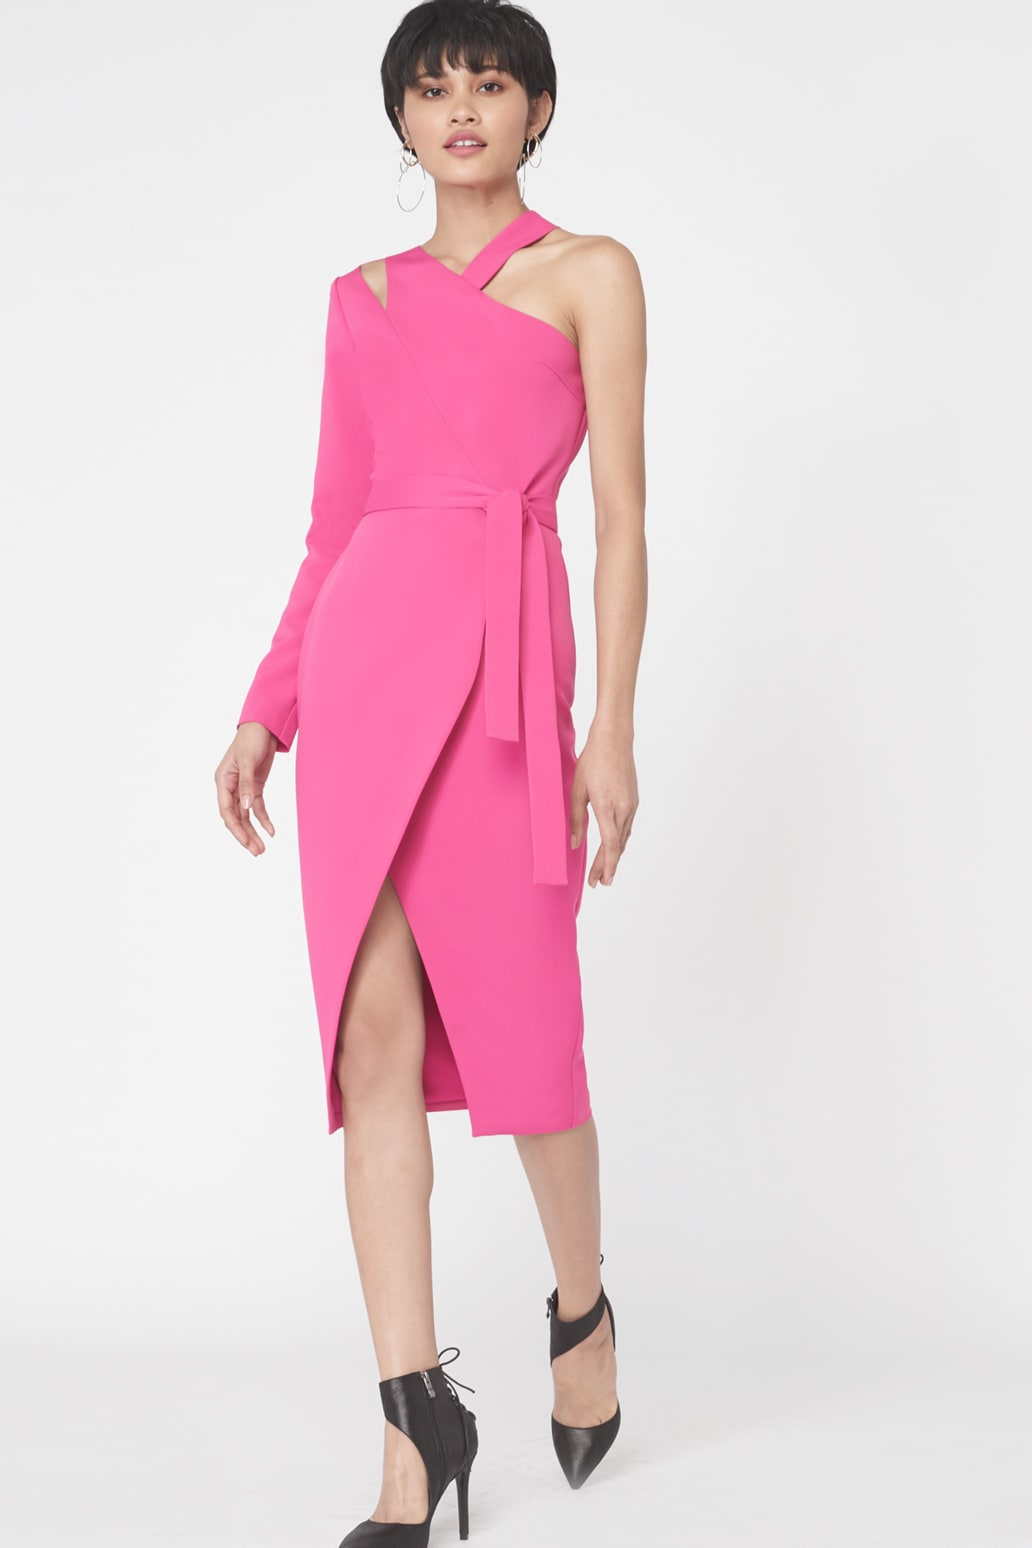 Asymmetric Shoulder Cutout Dress  in Fuchsia Pink